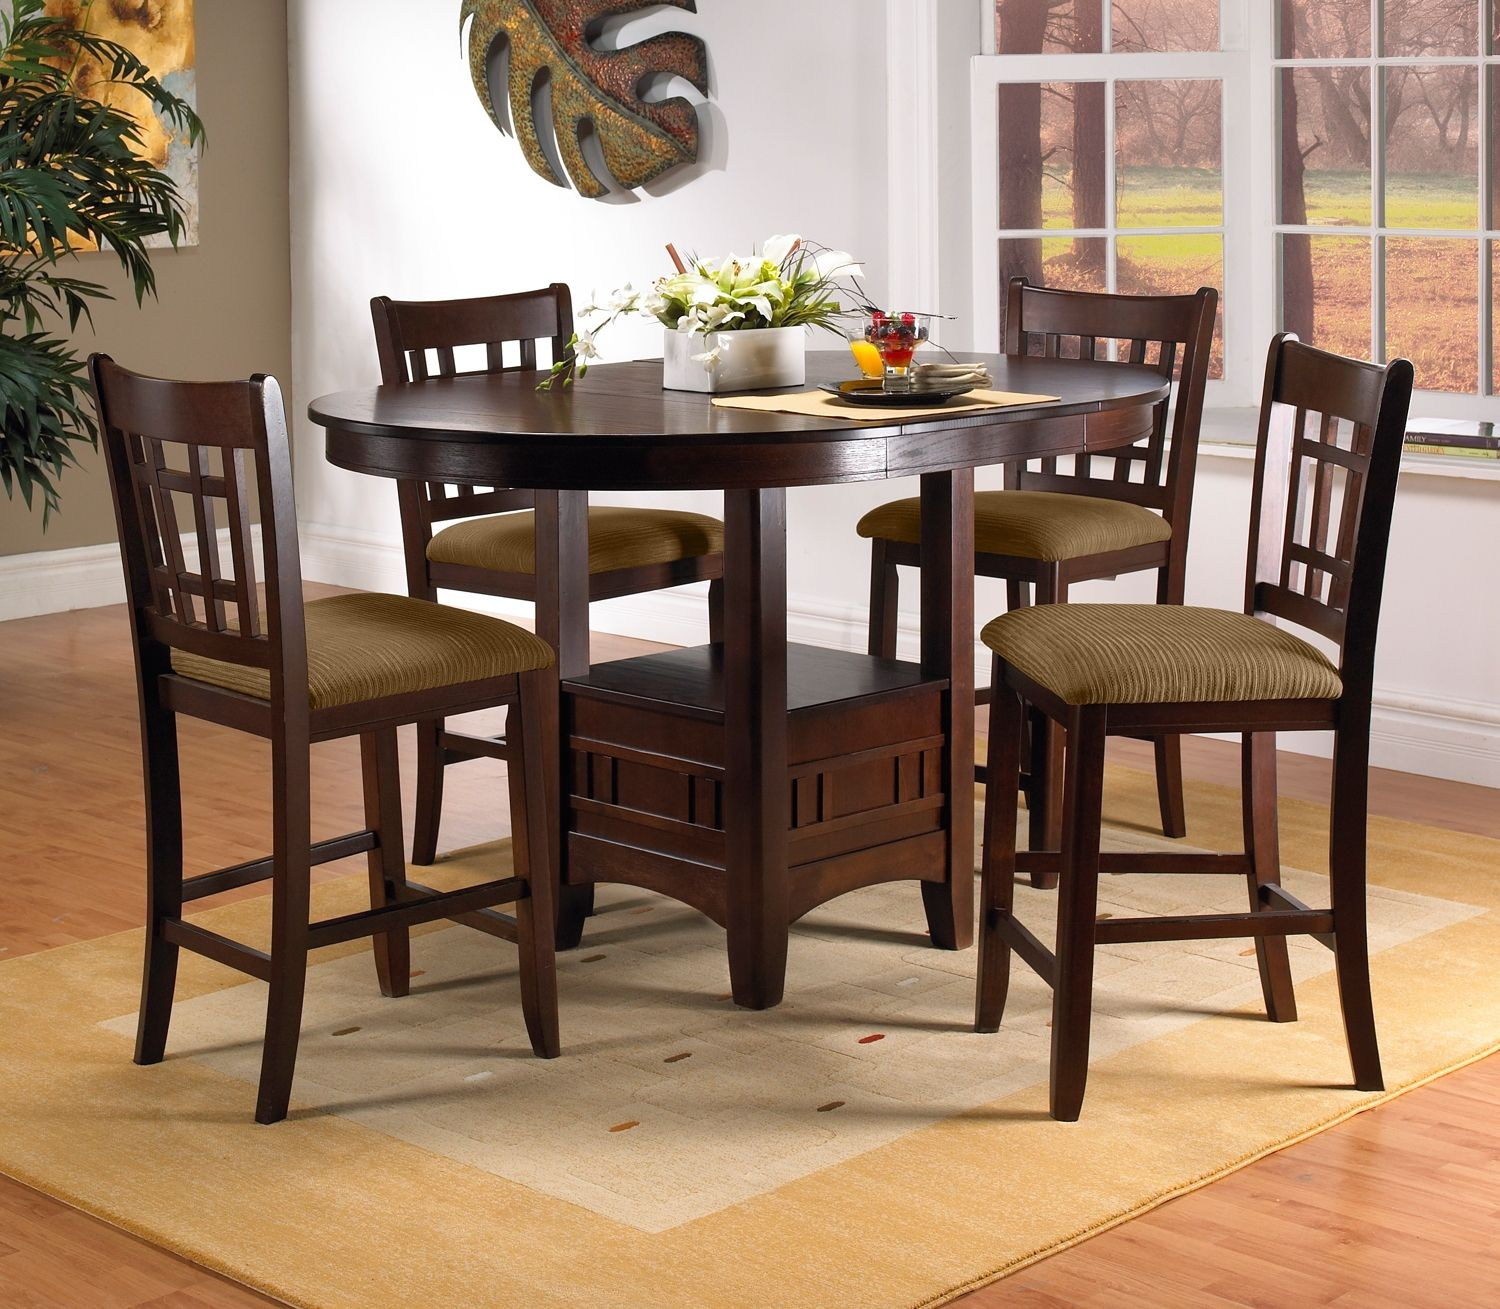 Casual Dining Room Furniture The Brighton II Collection Pub Table